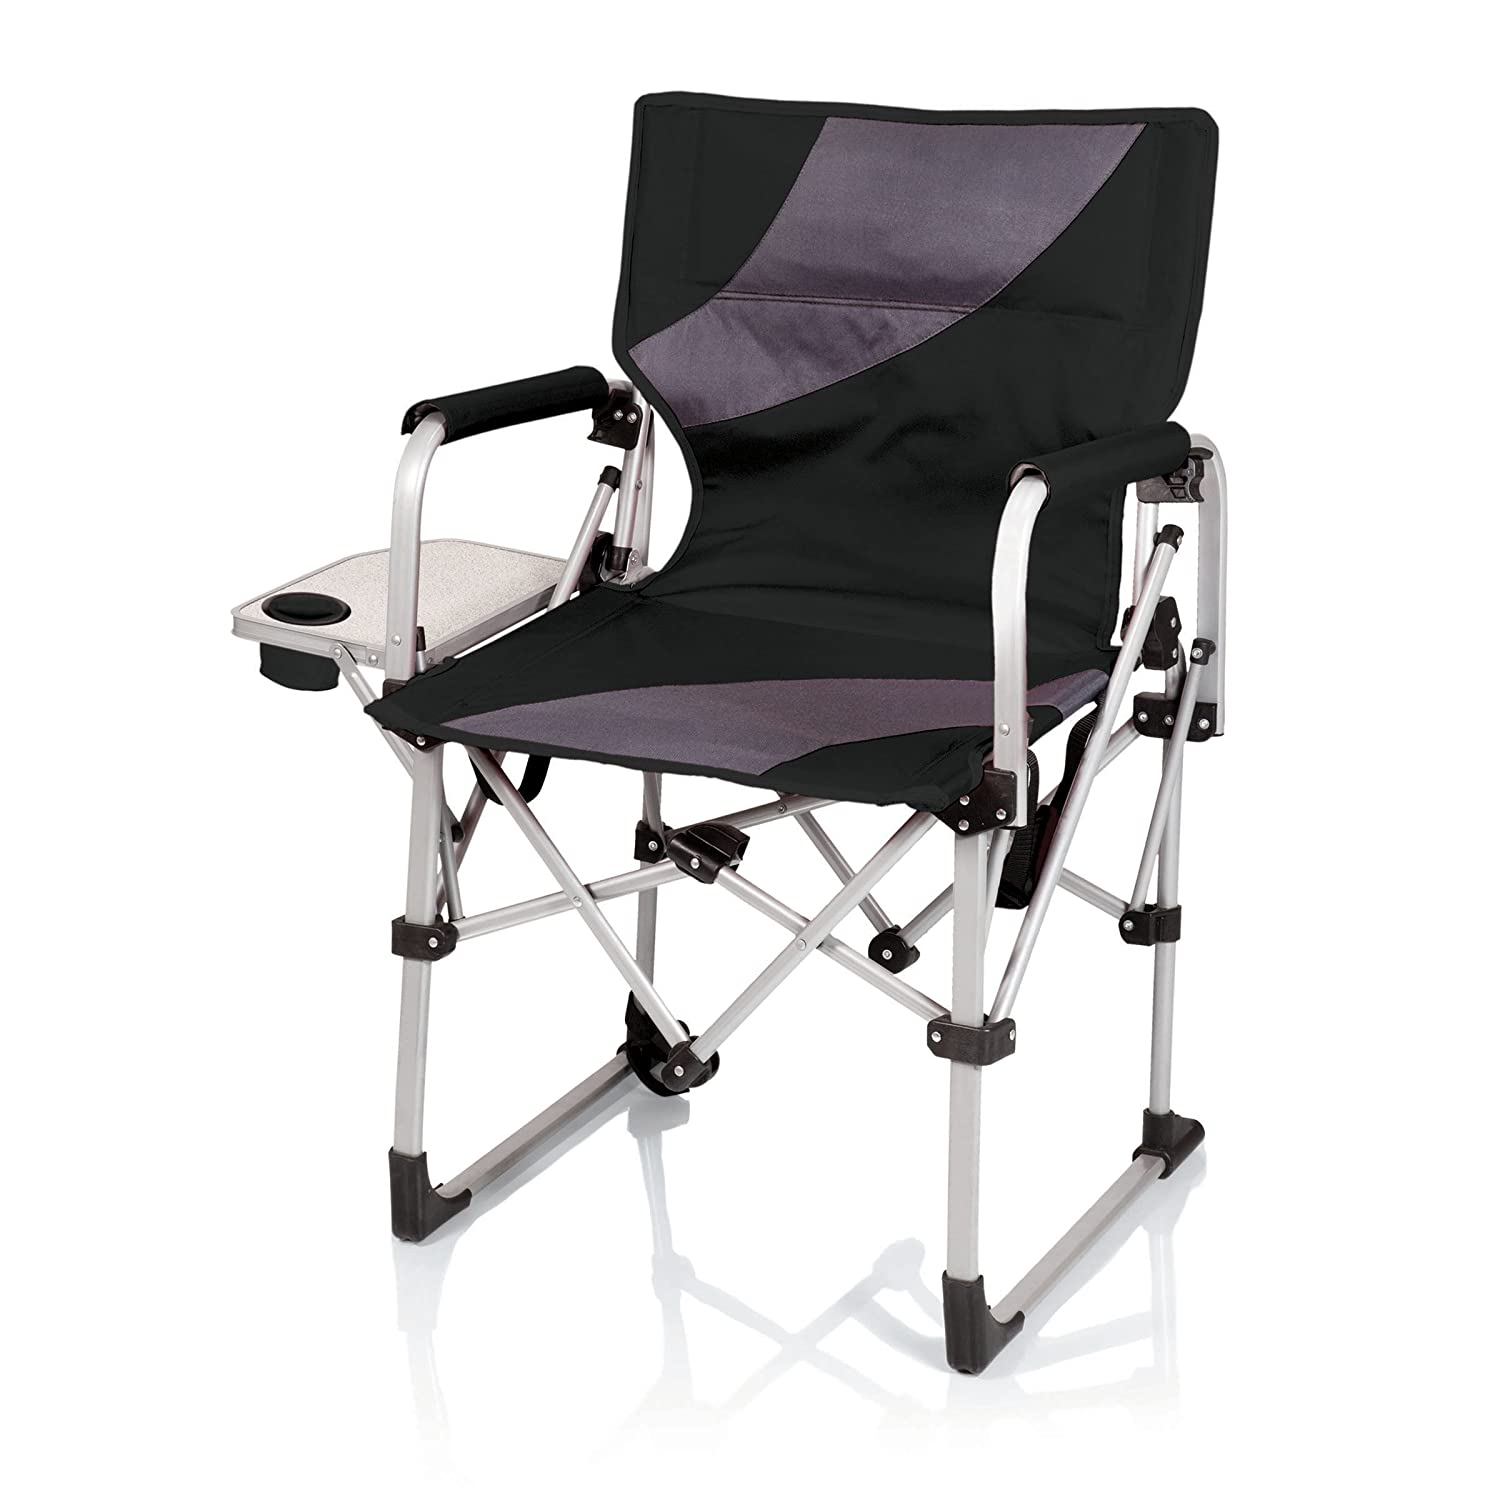 Amazon.com : Picnic Time Meta Portable Folding Chair, Black/Grey : Garden U0026  Outdoor